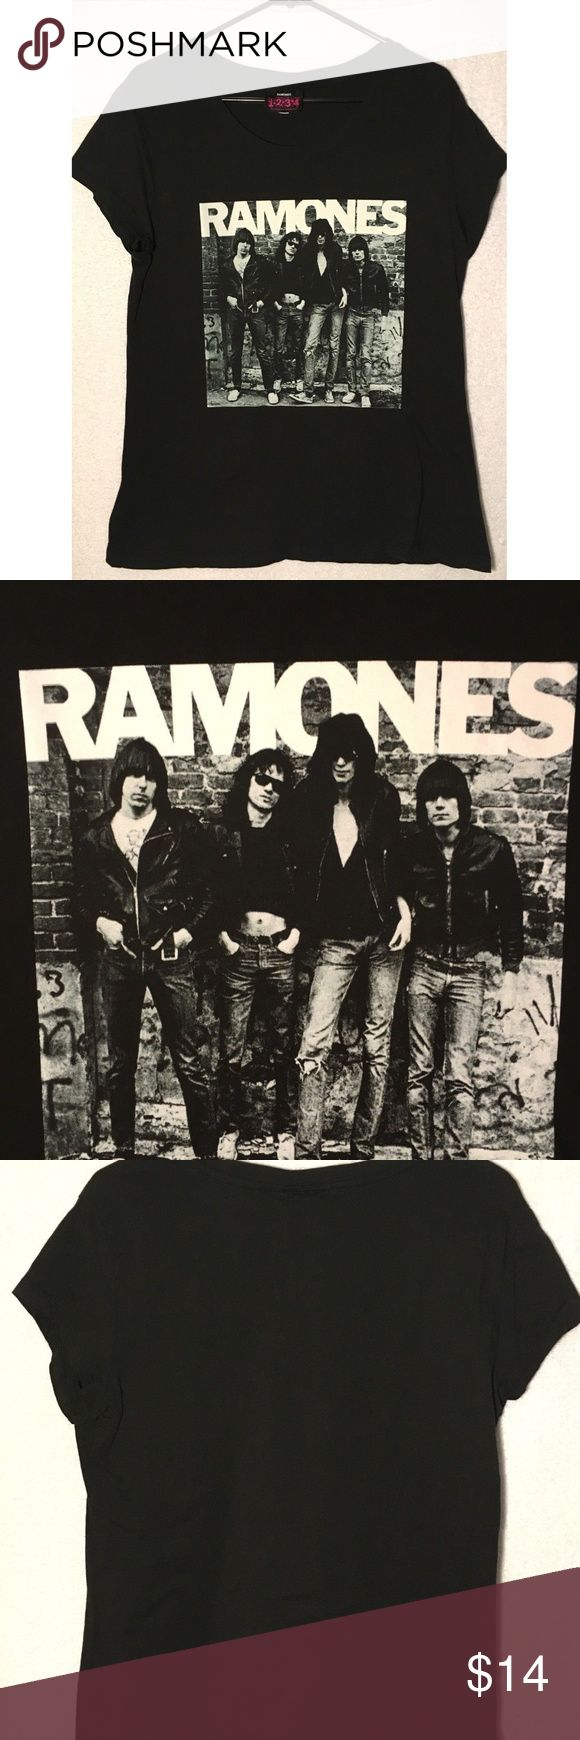 Ramones Womens T-Shirt Band Photo Cap Sleeve 2XL Nice authentic Ramones women's t-shirt Size 2XL Cap sleeves Black cotton. Features a nice band photo on front. Blank on back. Shipping includes tracking number. Please check measurements below to ensure proper fit. Thank you for viewing  MEASUREMENTS:  Armpit to armpit: 17  inches Length: 26  inches Ramones Tops Tees - Short Sleeve